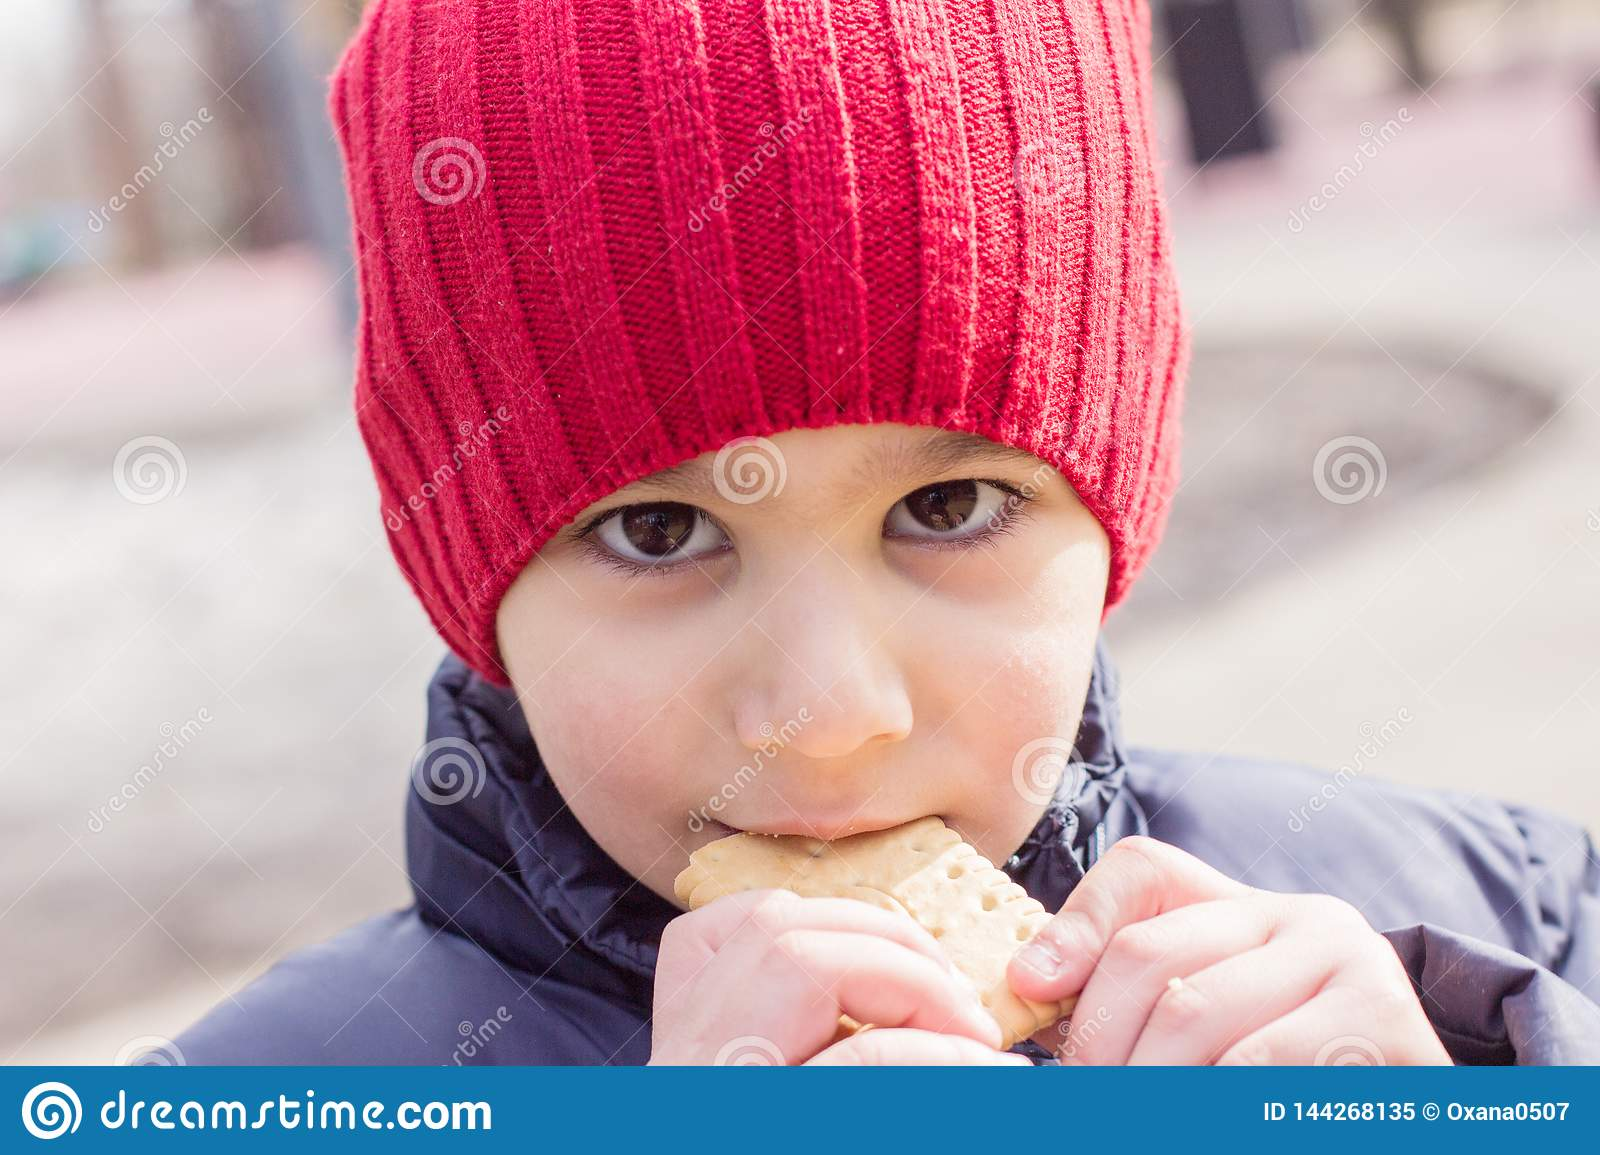 Baby eating cookies outdoors. emotional close-up portrait.